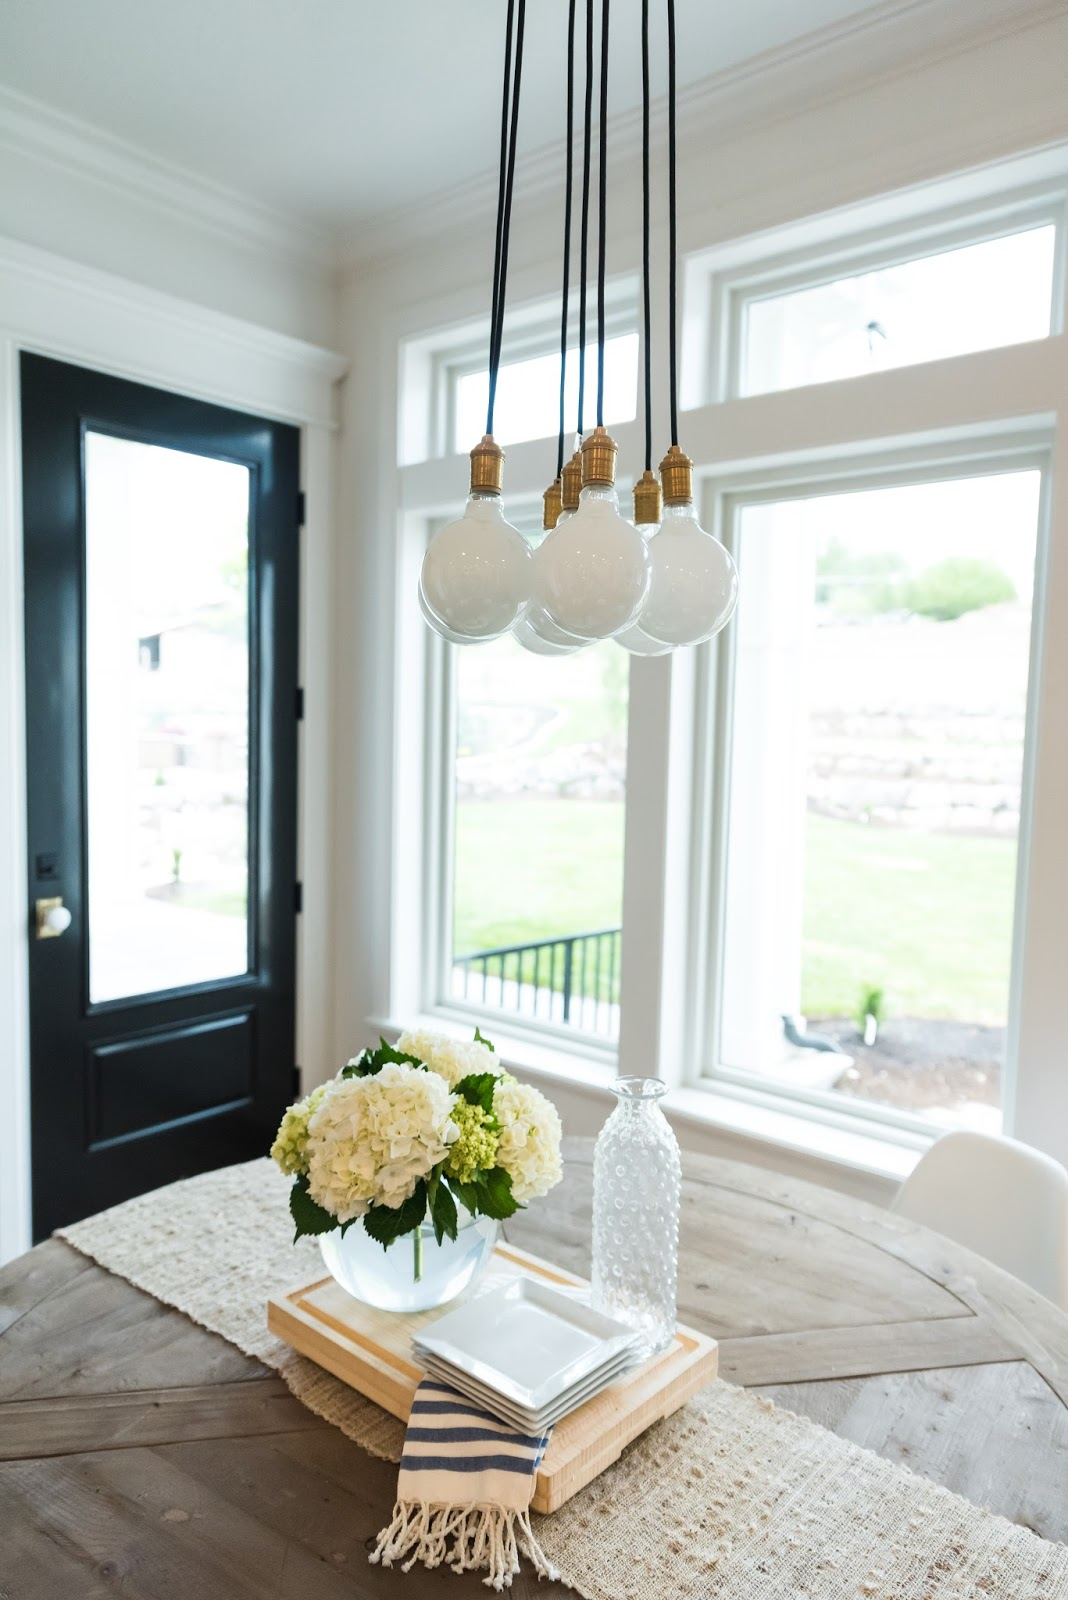 Heather Luczak Photography, Utah Interior Photographer